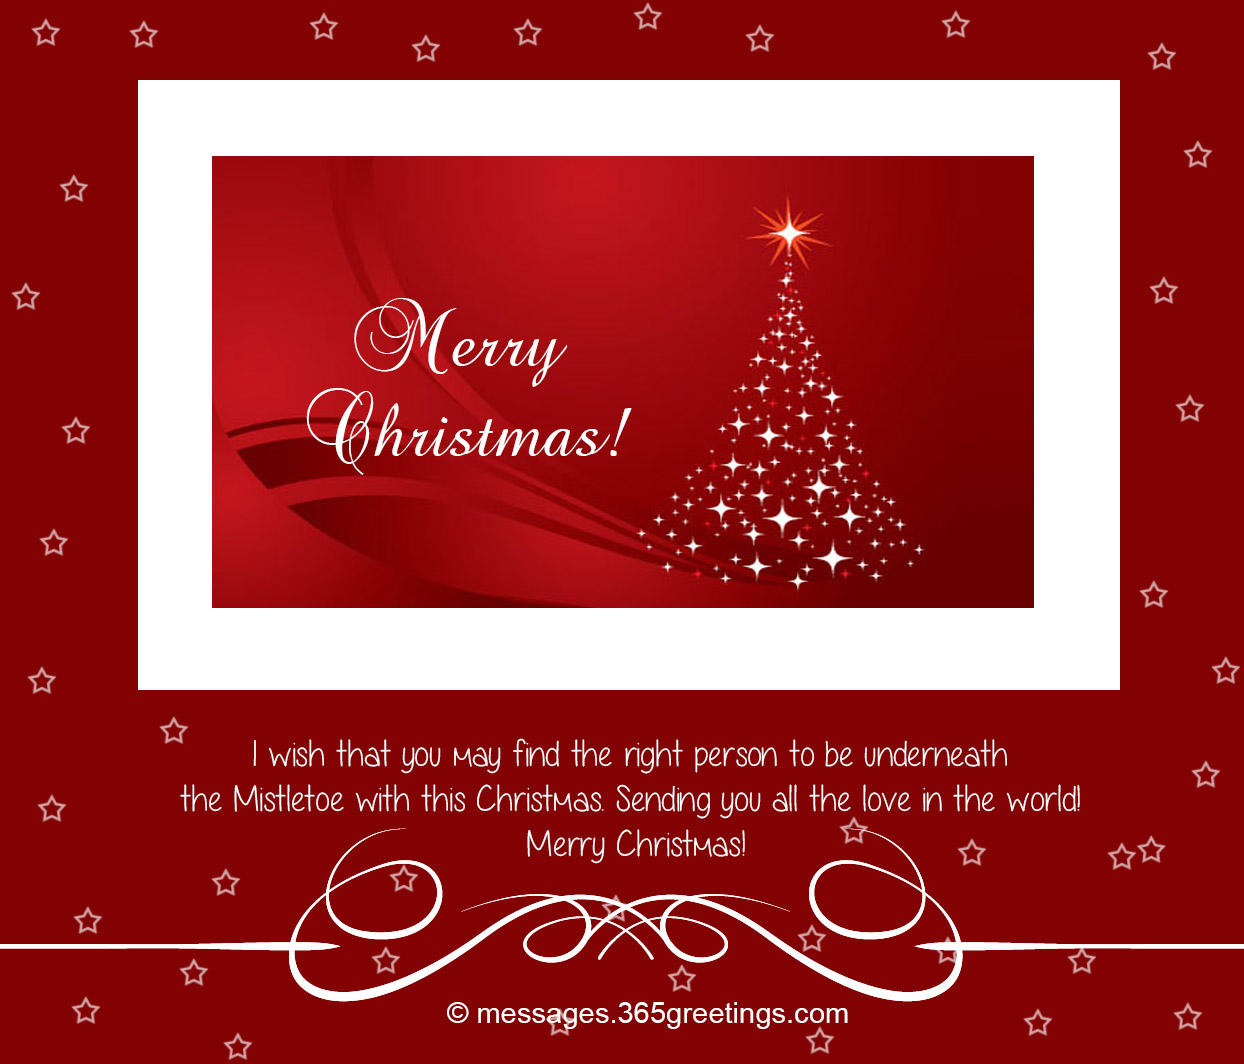 Best christmas card sayings and greetings 365greetings christmas card sayings greetings m4hsunfo